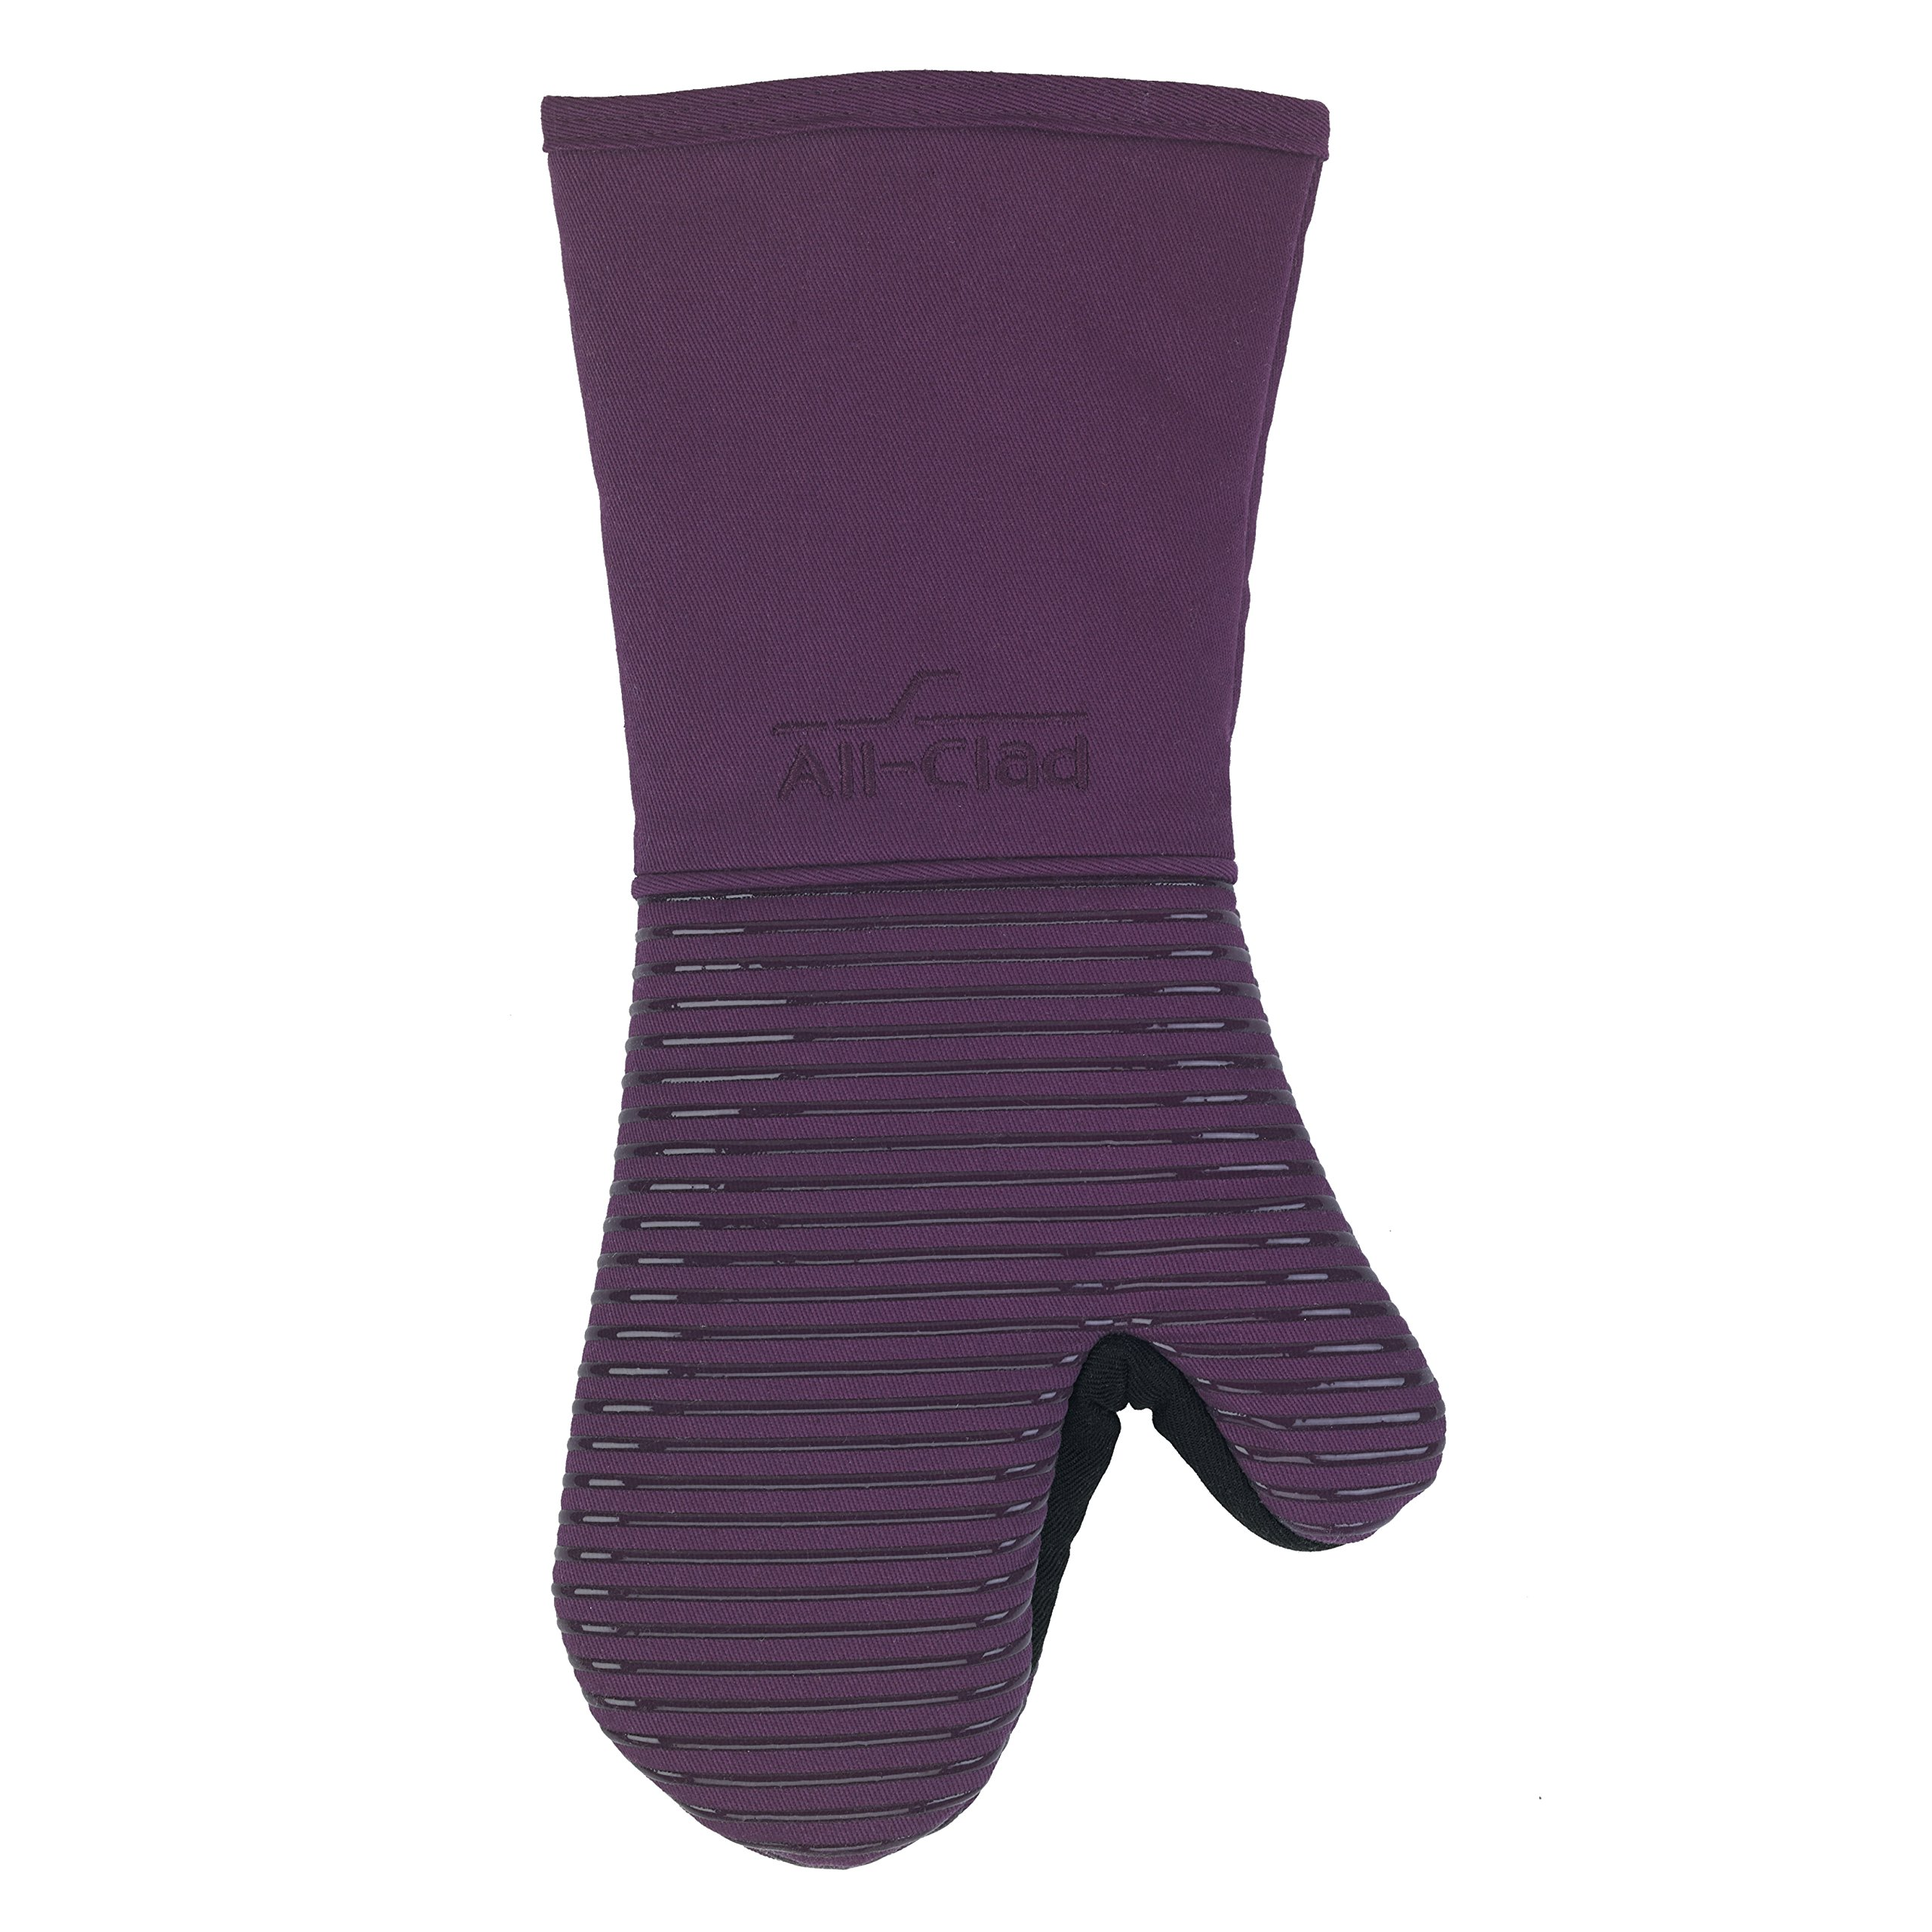 All-Clad Textiles Fire-Resistant Heavyweight Cotton Twill Oven Mitt with Non-Slip Silicone Grip and Reinforced Thumb, 500°F Heat Threshold, Plum Purple